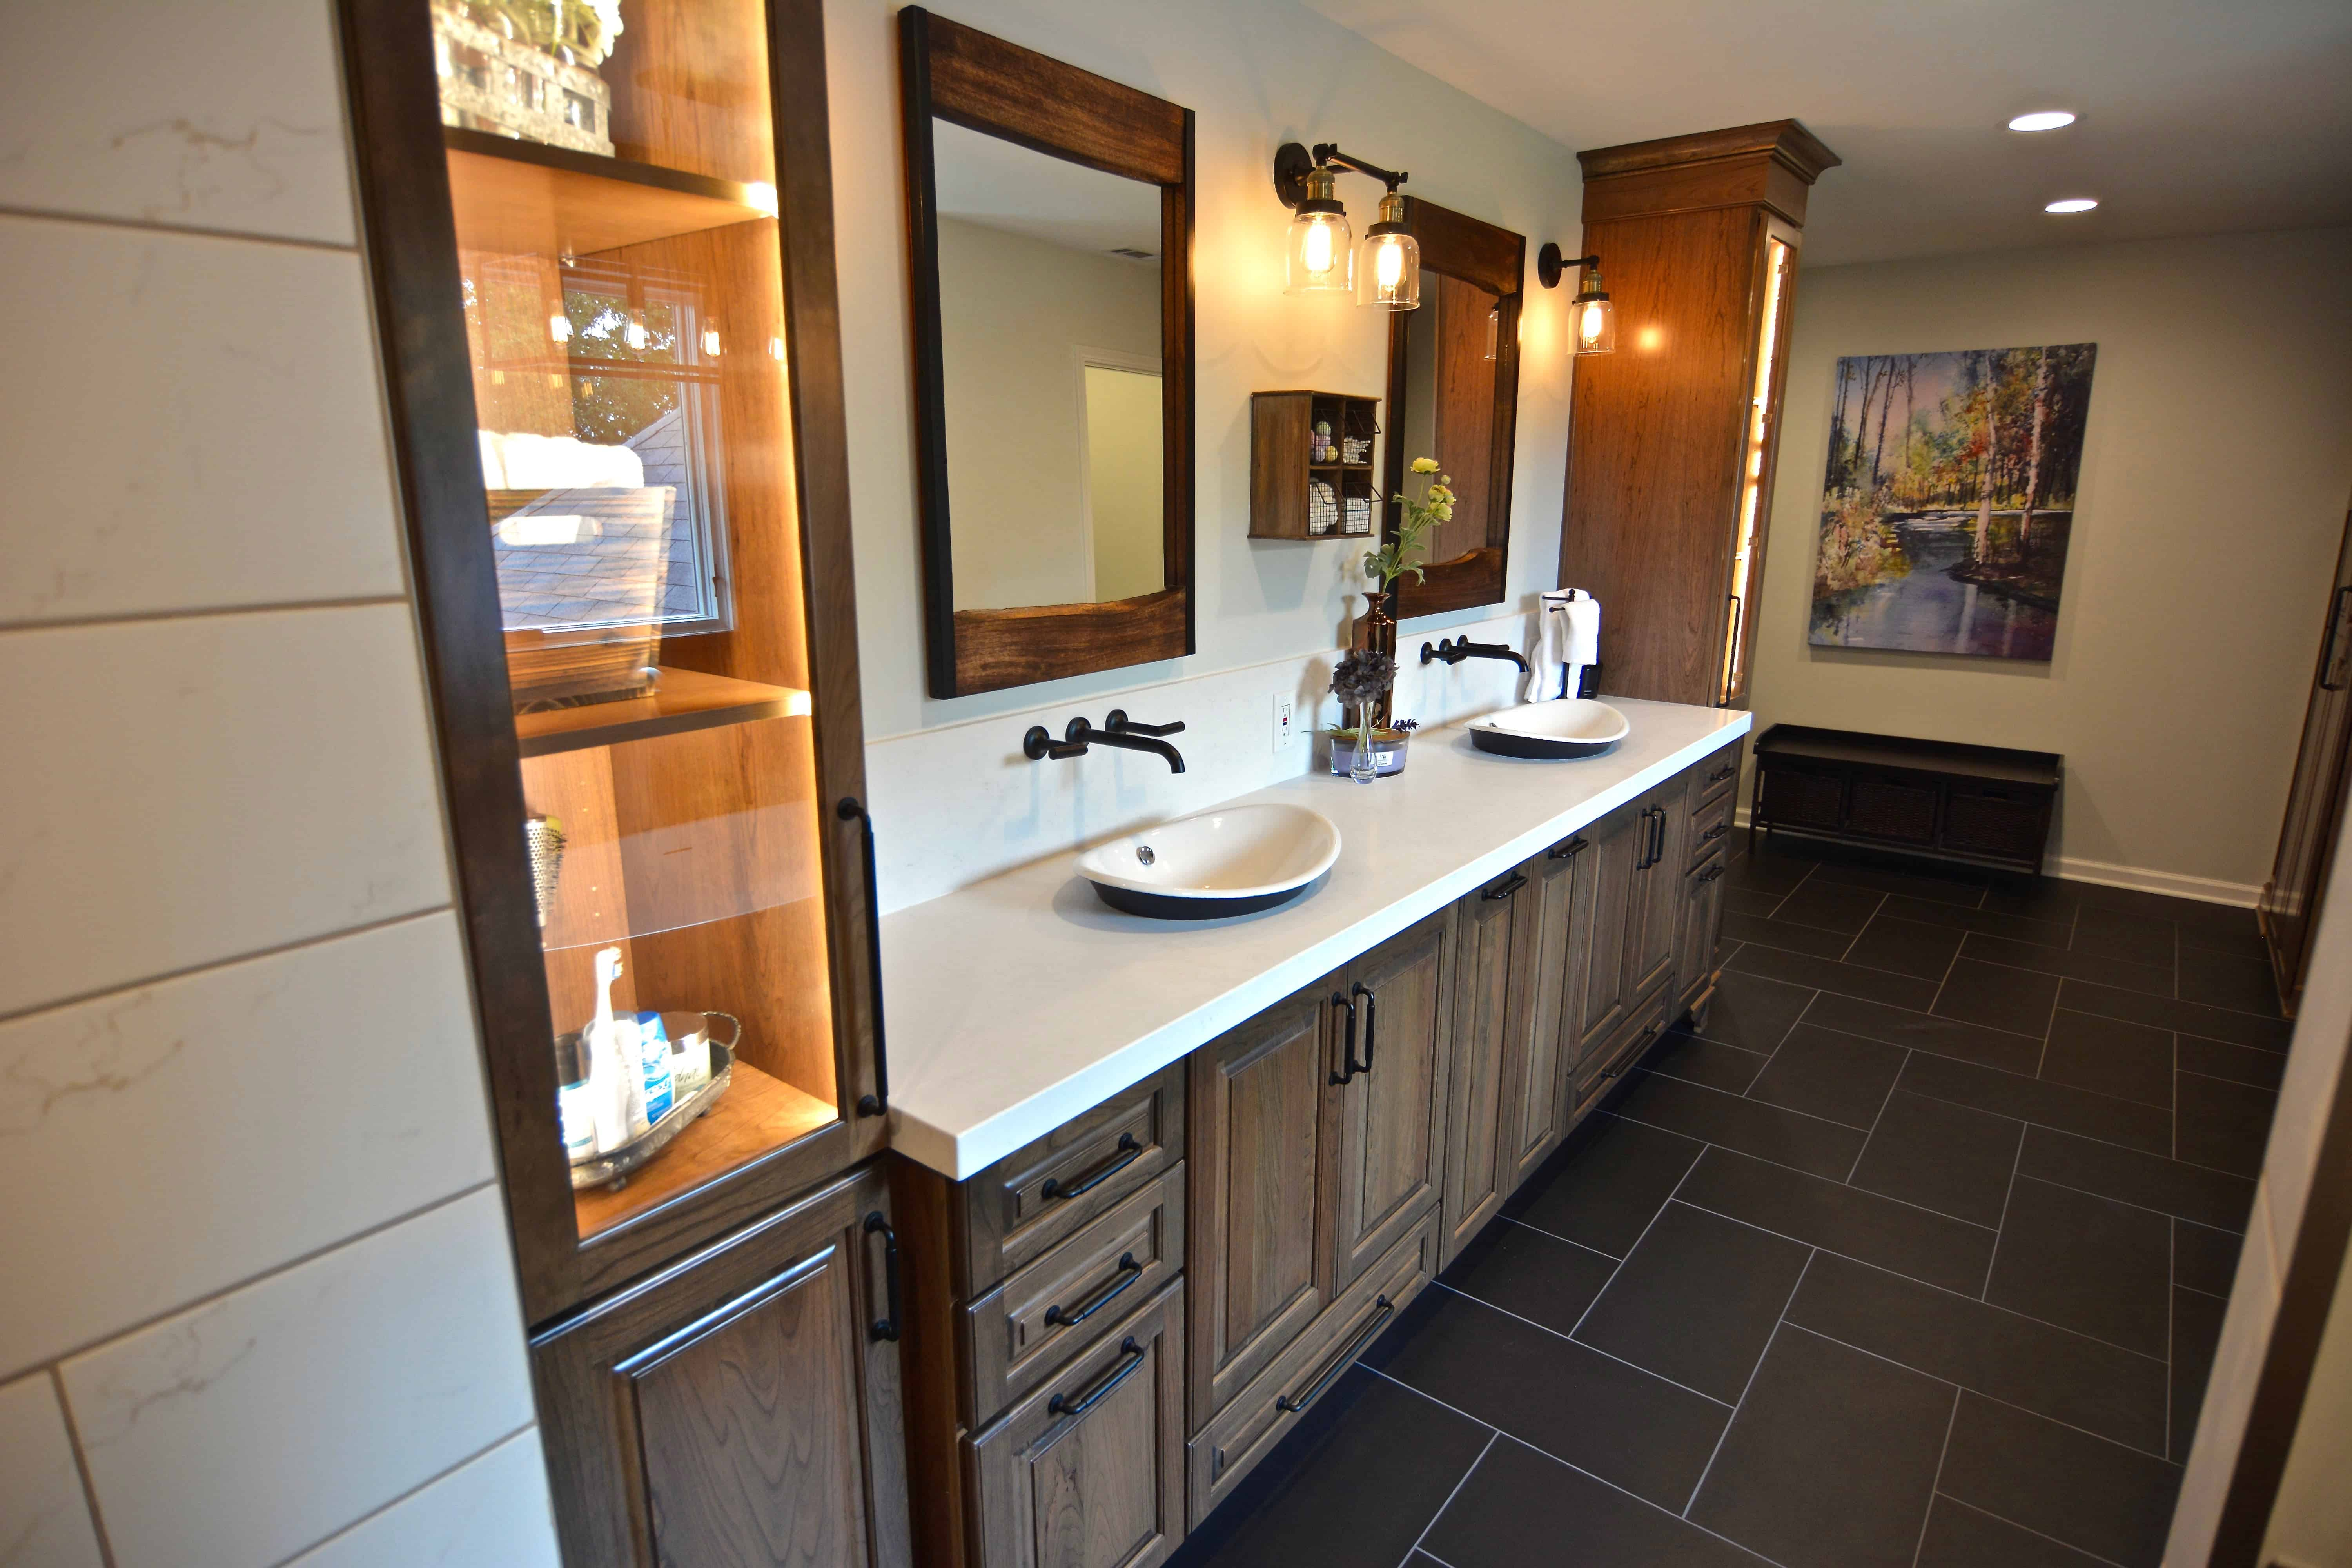 Residential Electrician for Bathroom Lighting